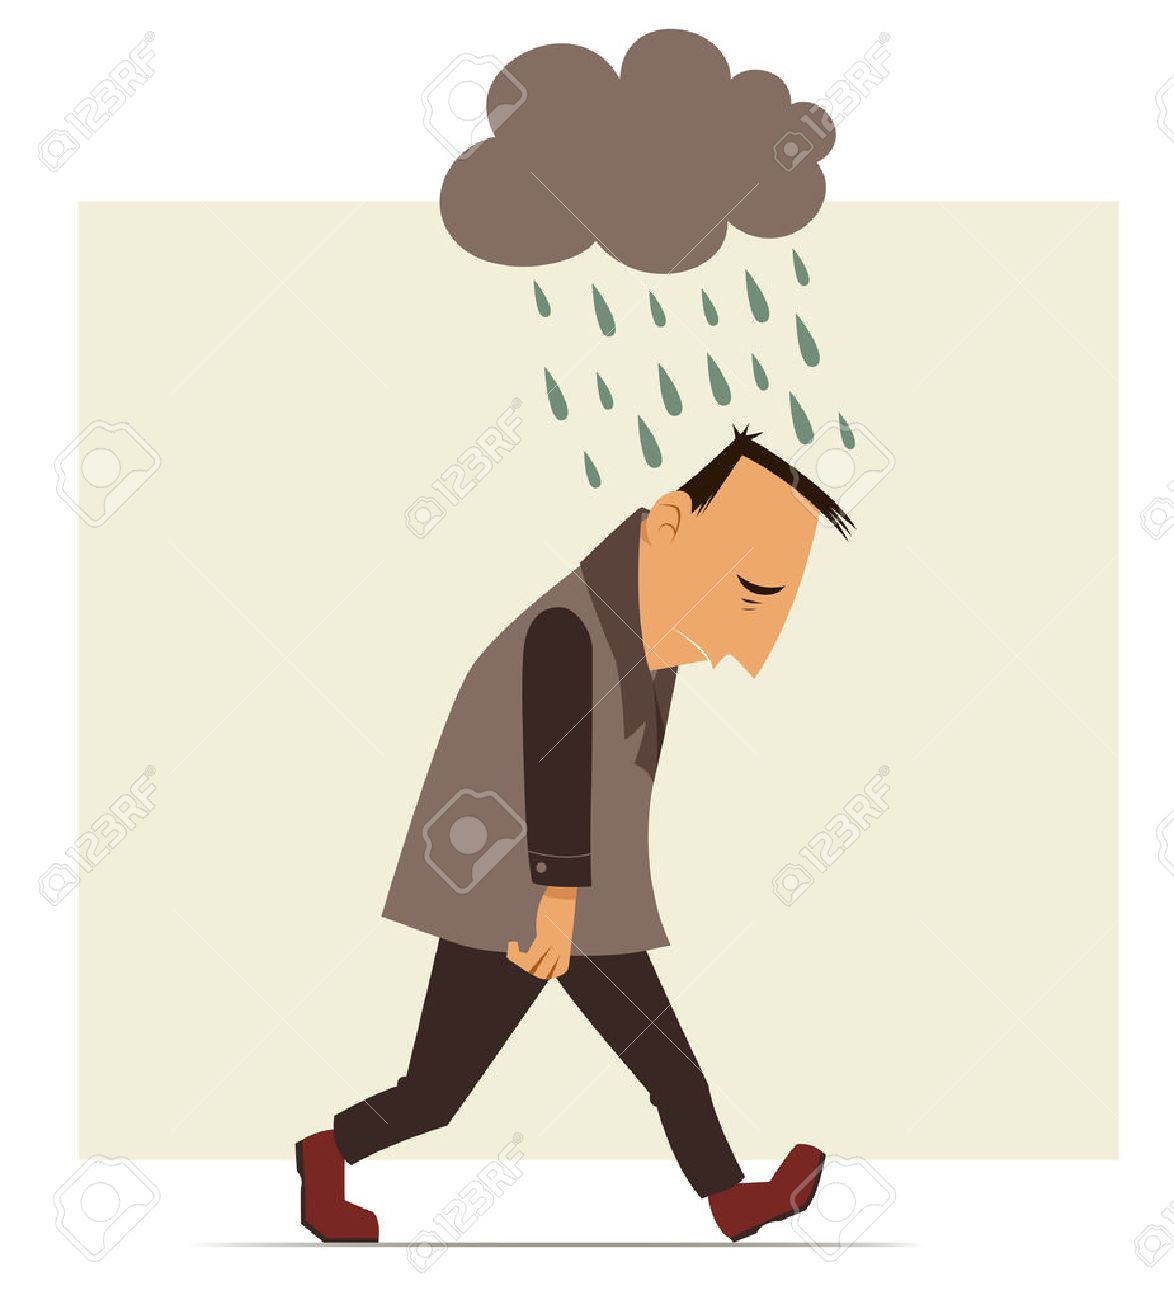 depressed man walking with a cloud of rain over his head - 27291105